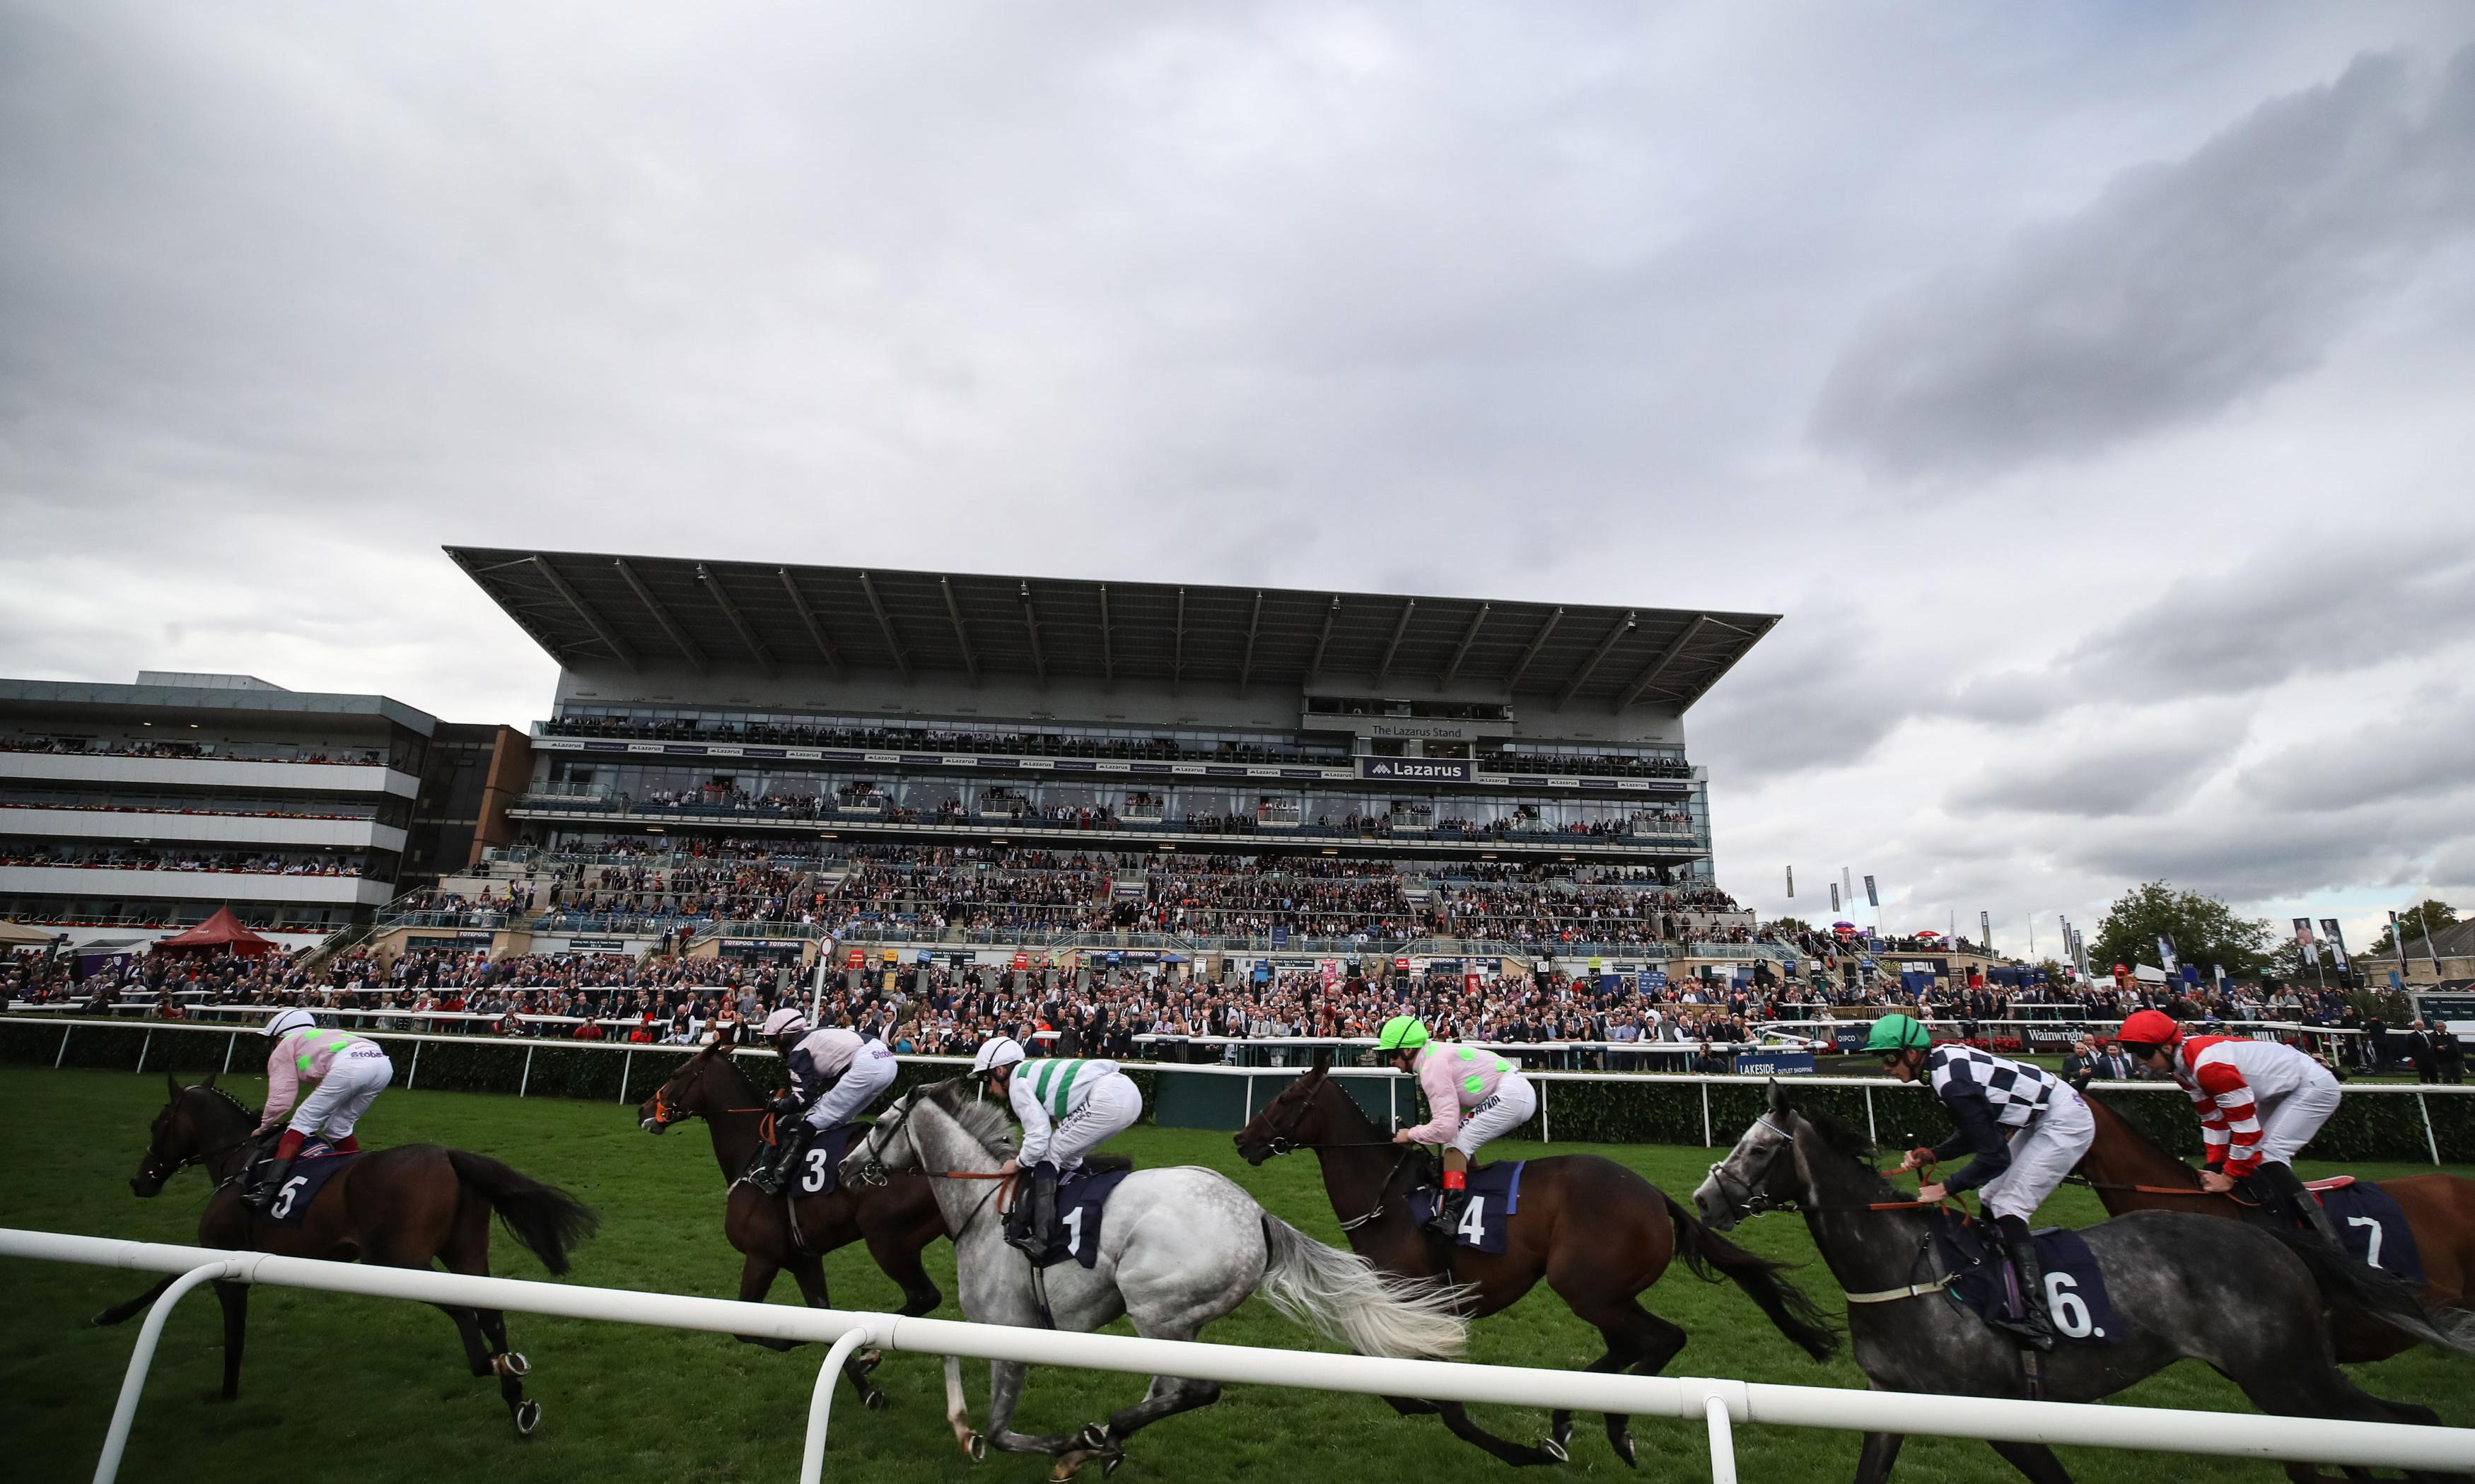 Talking Horses: racing moves to ease workload and improve wellbeing